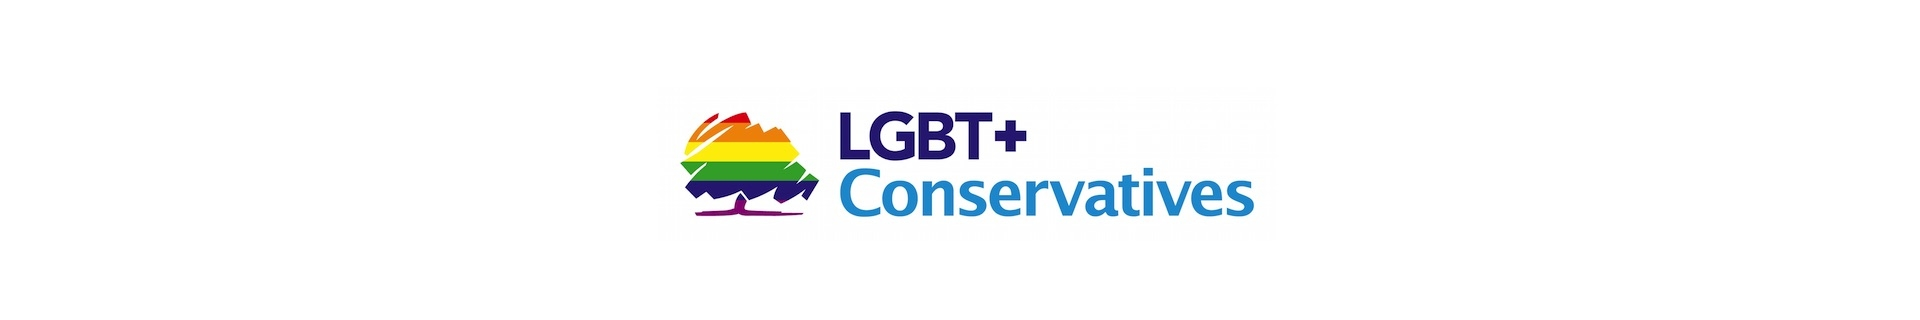 Banner image for LGBT+ Conservatives